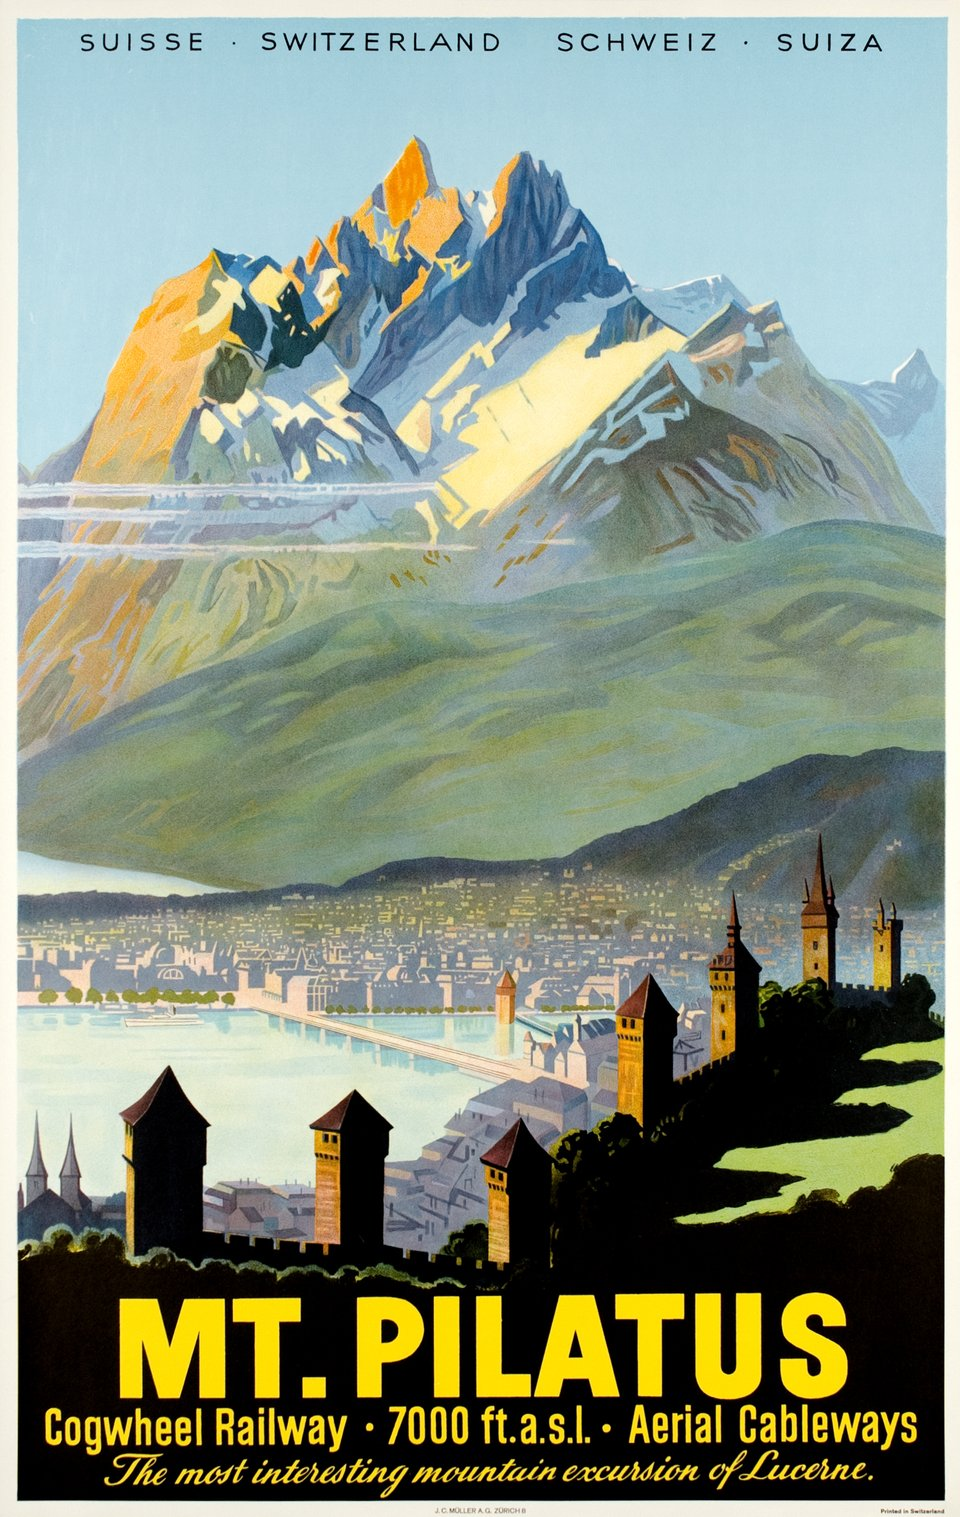 Mt Pilatus, cogwheel railway and aerial cableways – Affiche ancienne –  ANONYME – 1955